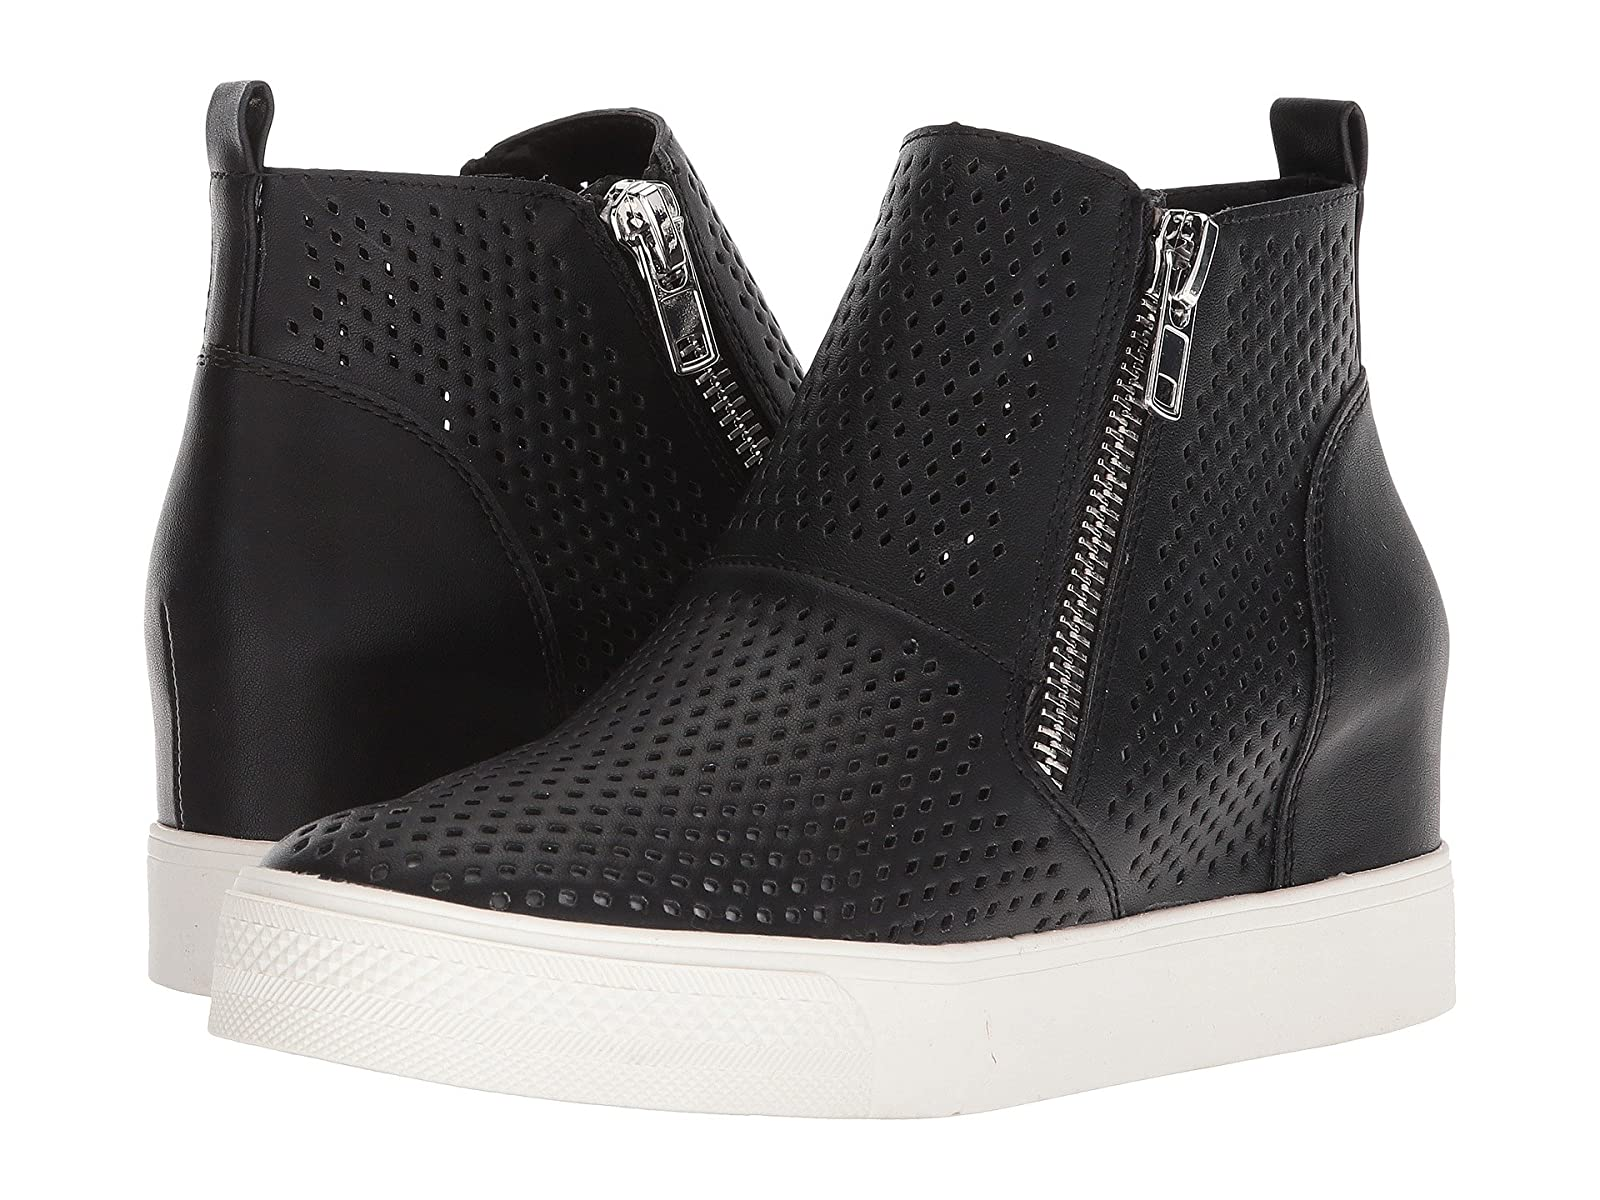 Steve Madden Wedgie-P SneakerAtmospheric grades have affordable shoes